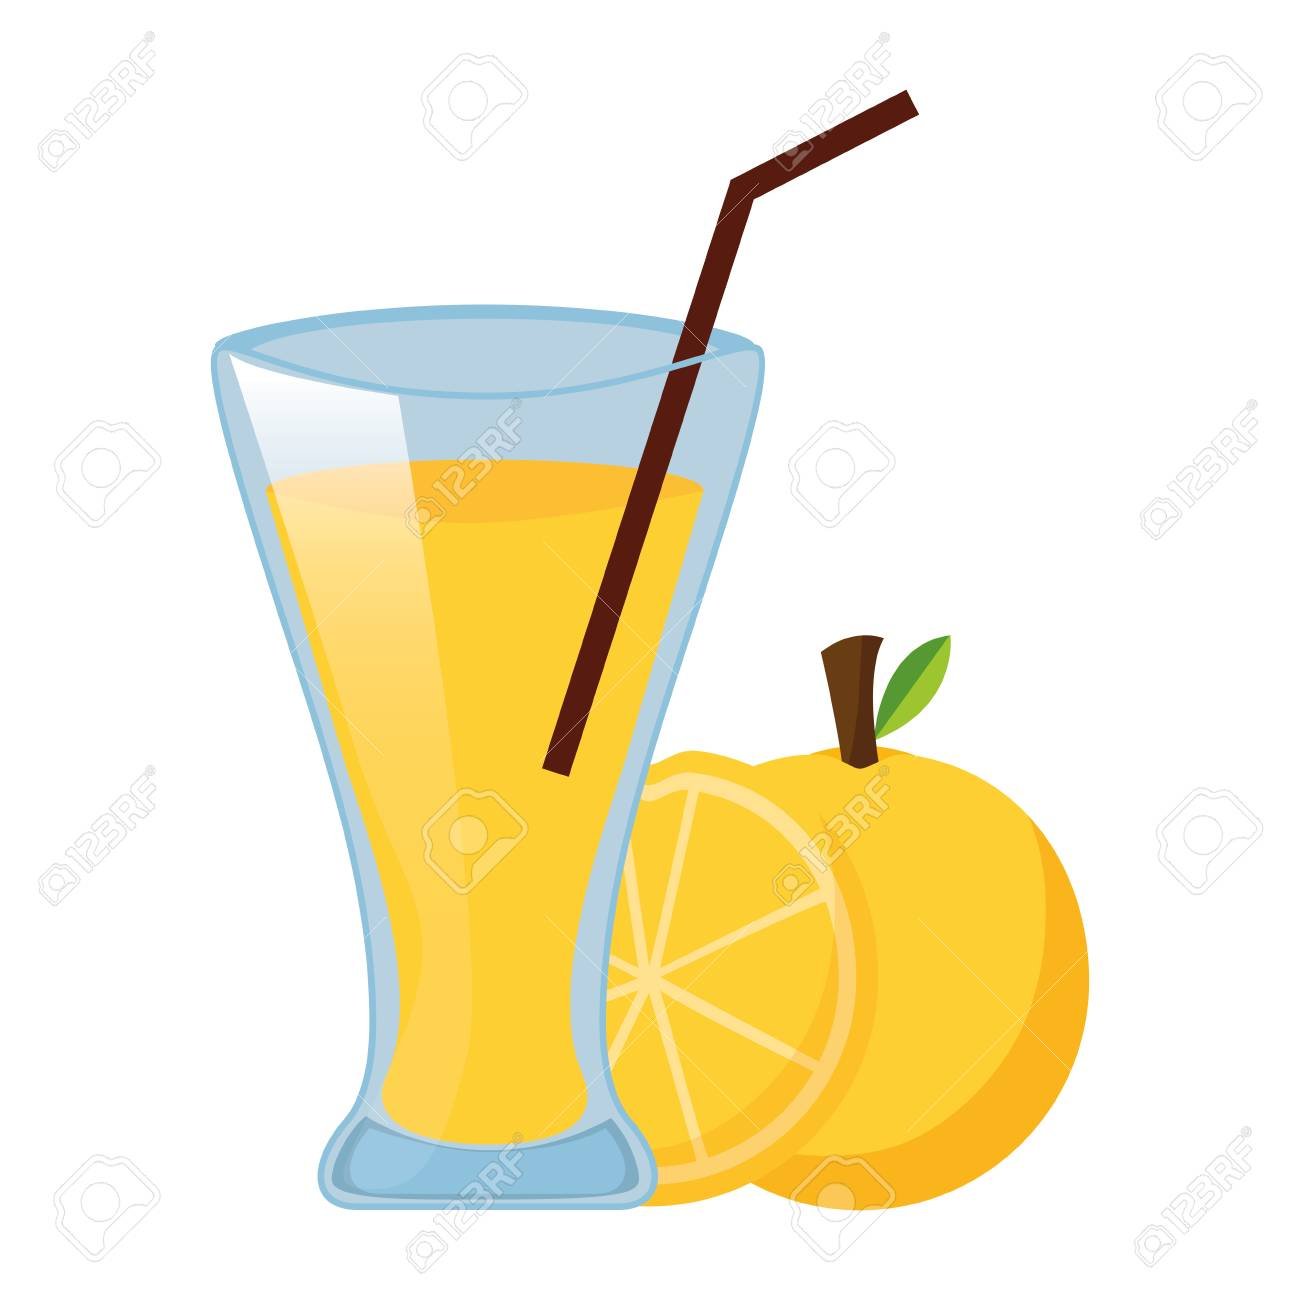 orange juice cup with straw vector illustration - 126820212